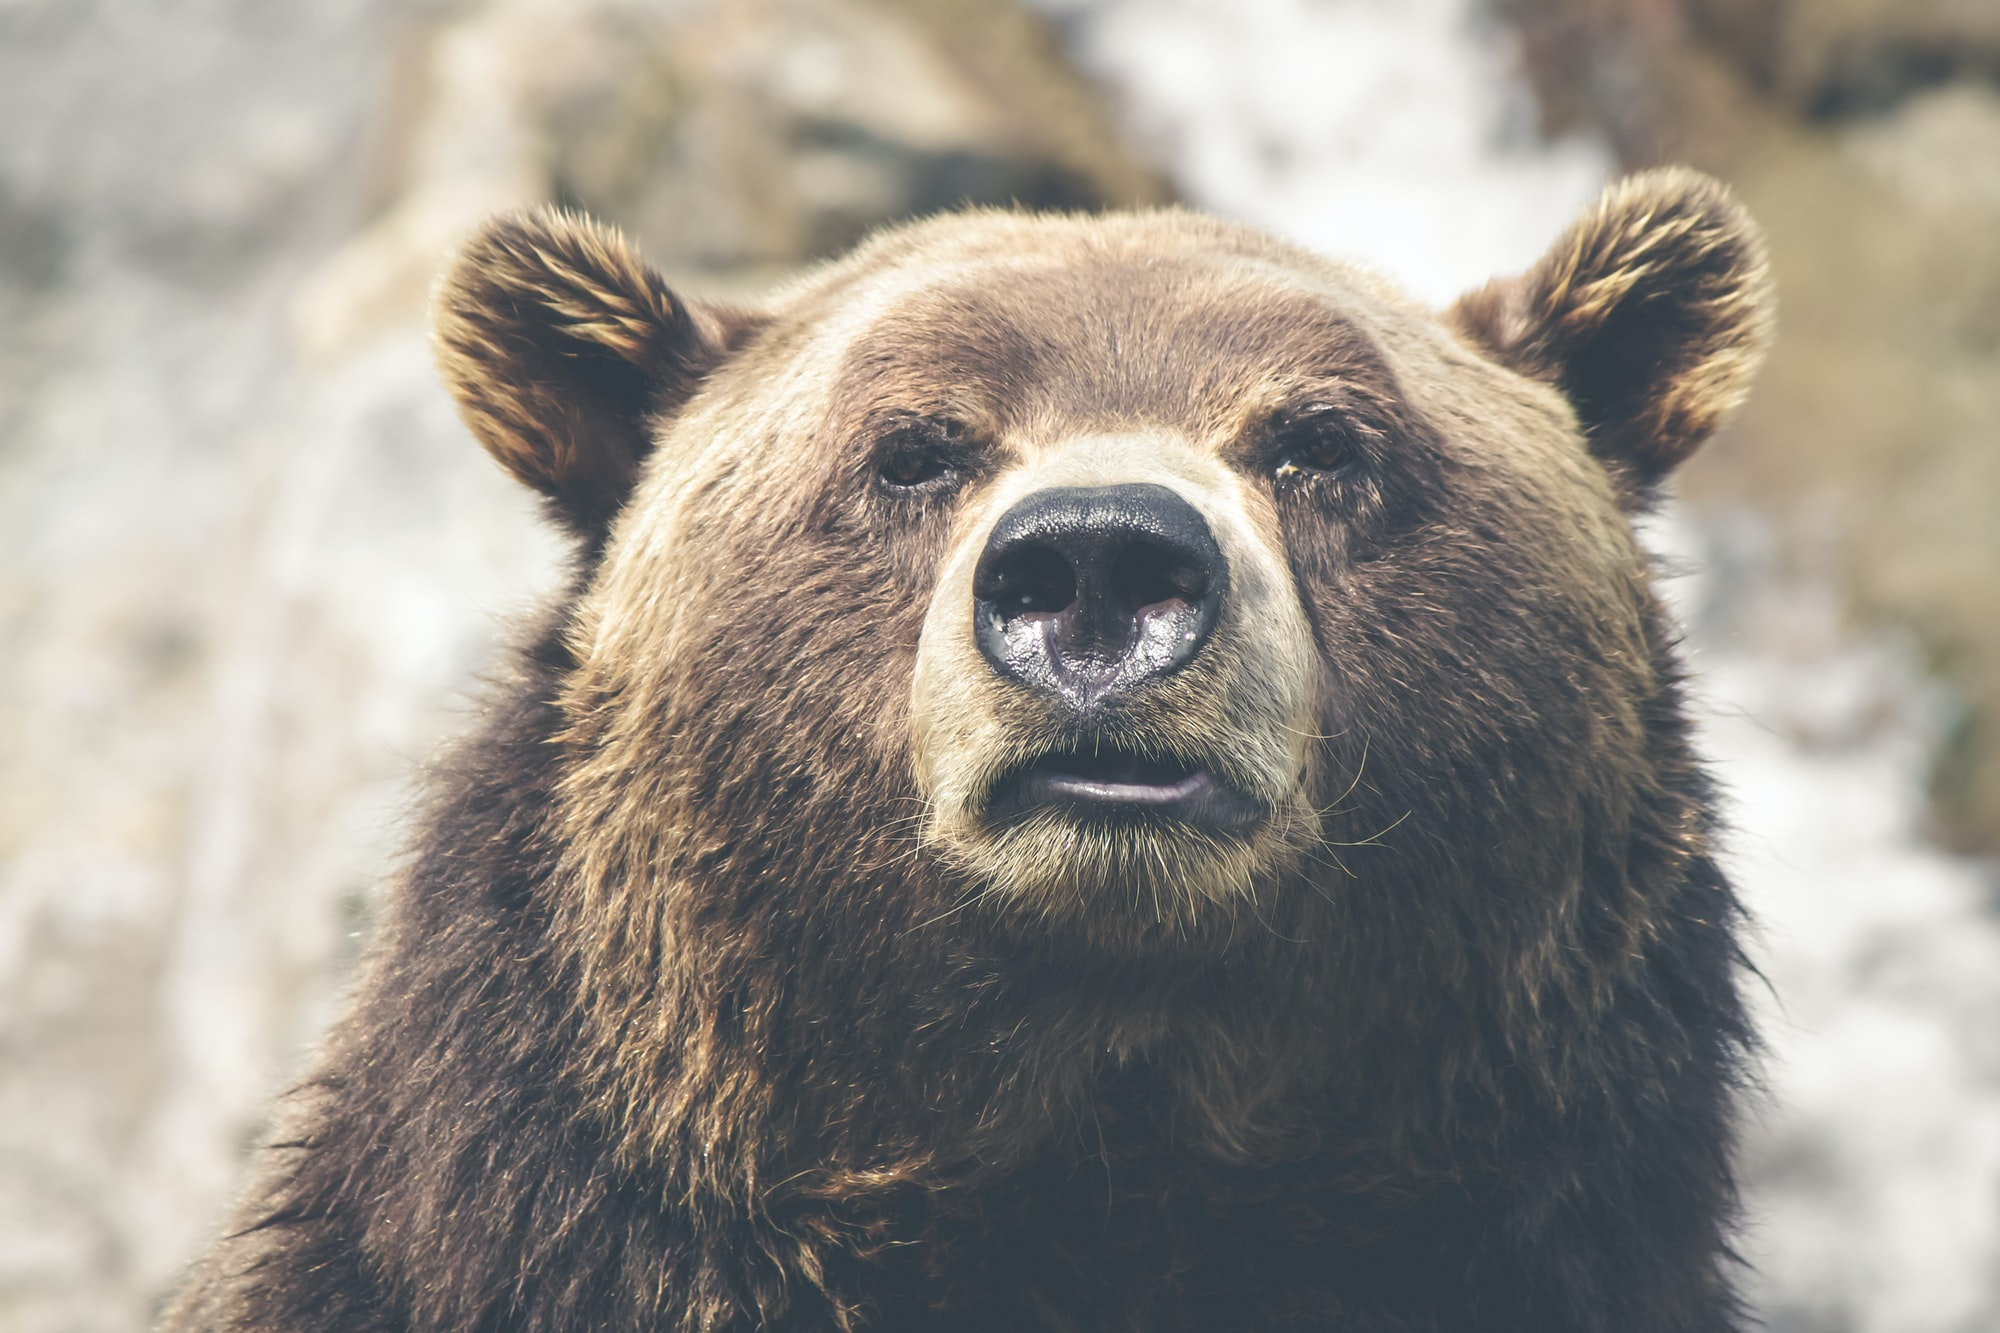 Thoughtful grizzly